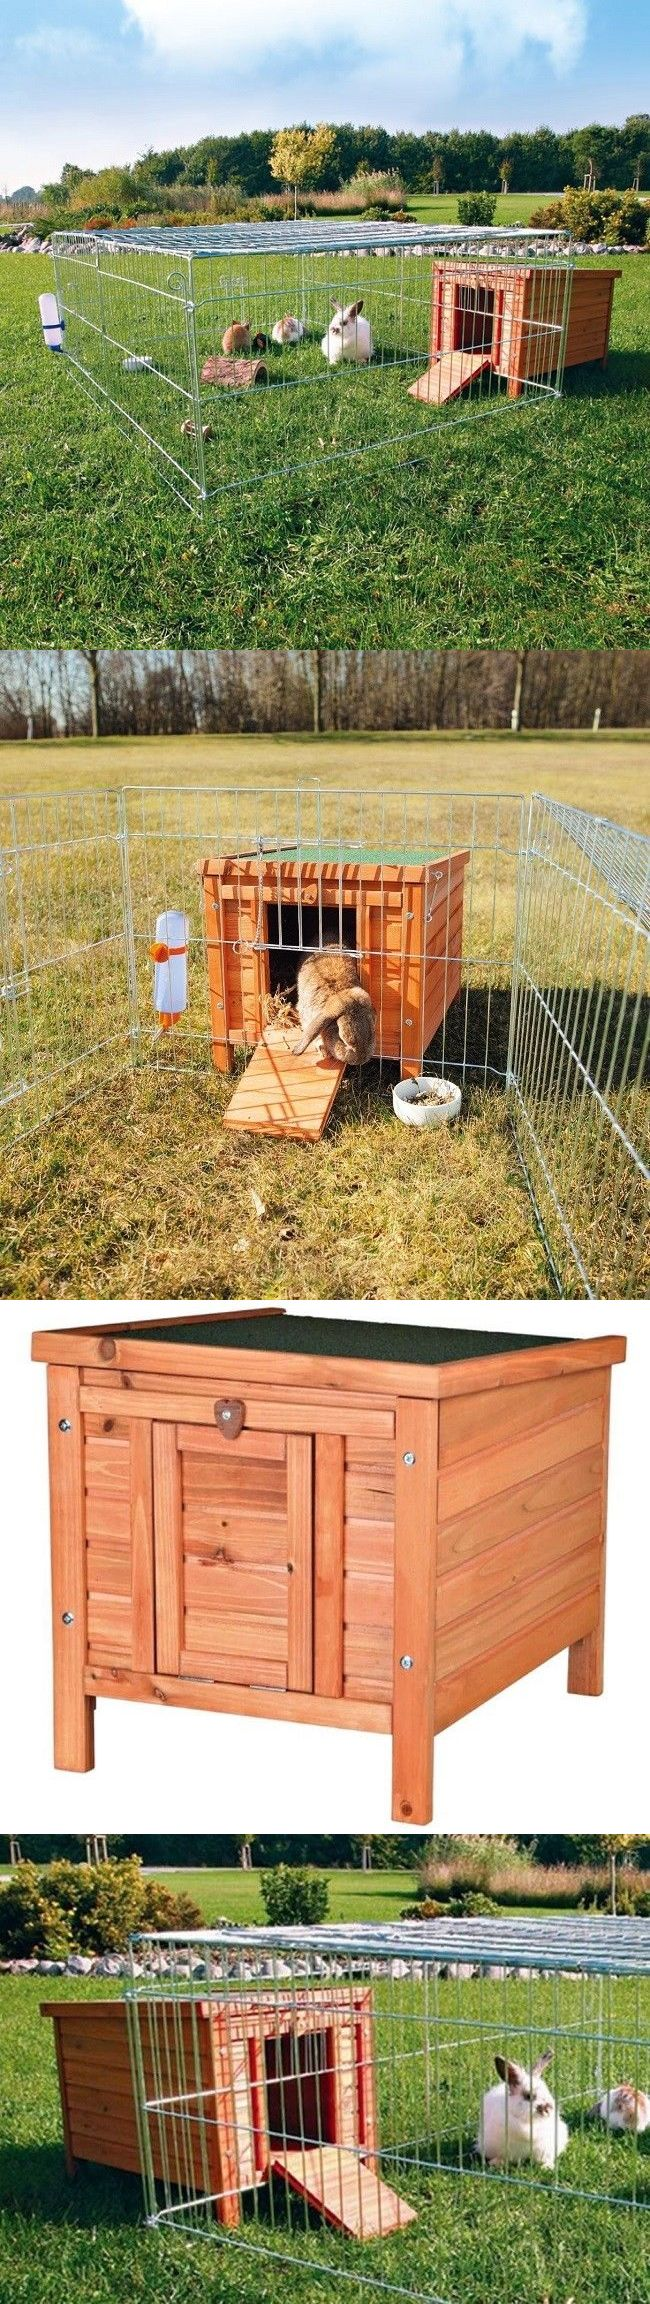 Cages and Enclosure 63108: Guinea Pig Supplies Large Rabbit Hutch Bunny Cage Wire With Outdoor Run Nest Box -> BUY IT NOW ONLY: $113.98 on eBay!